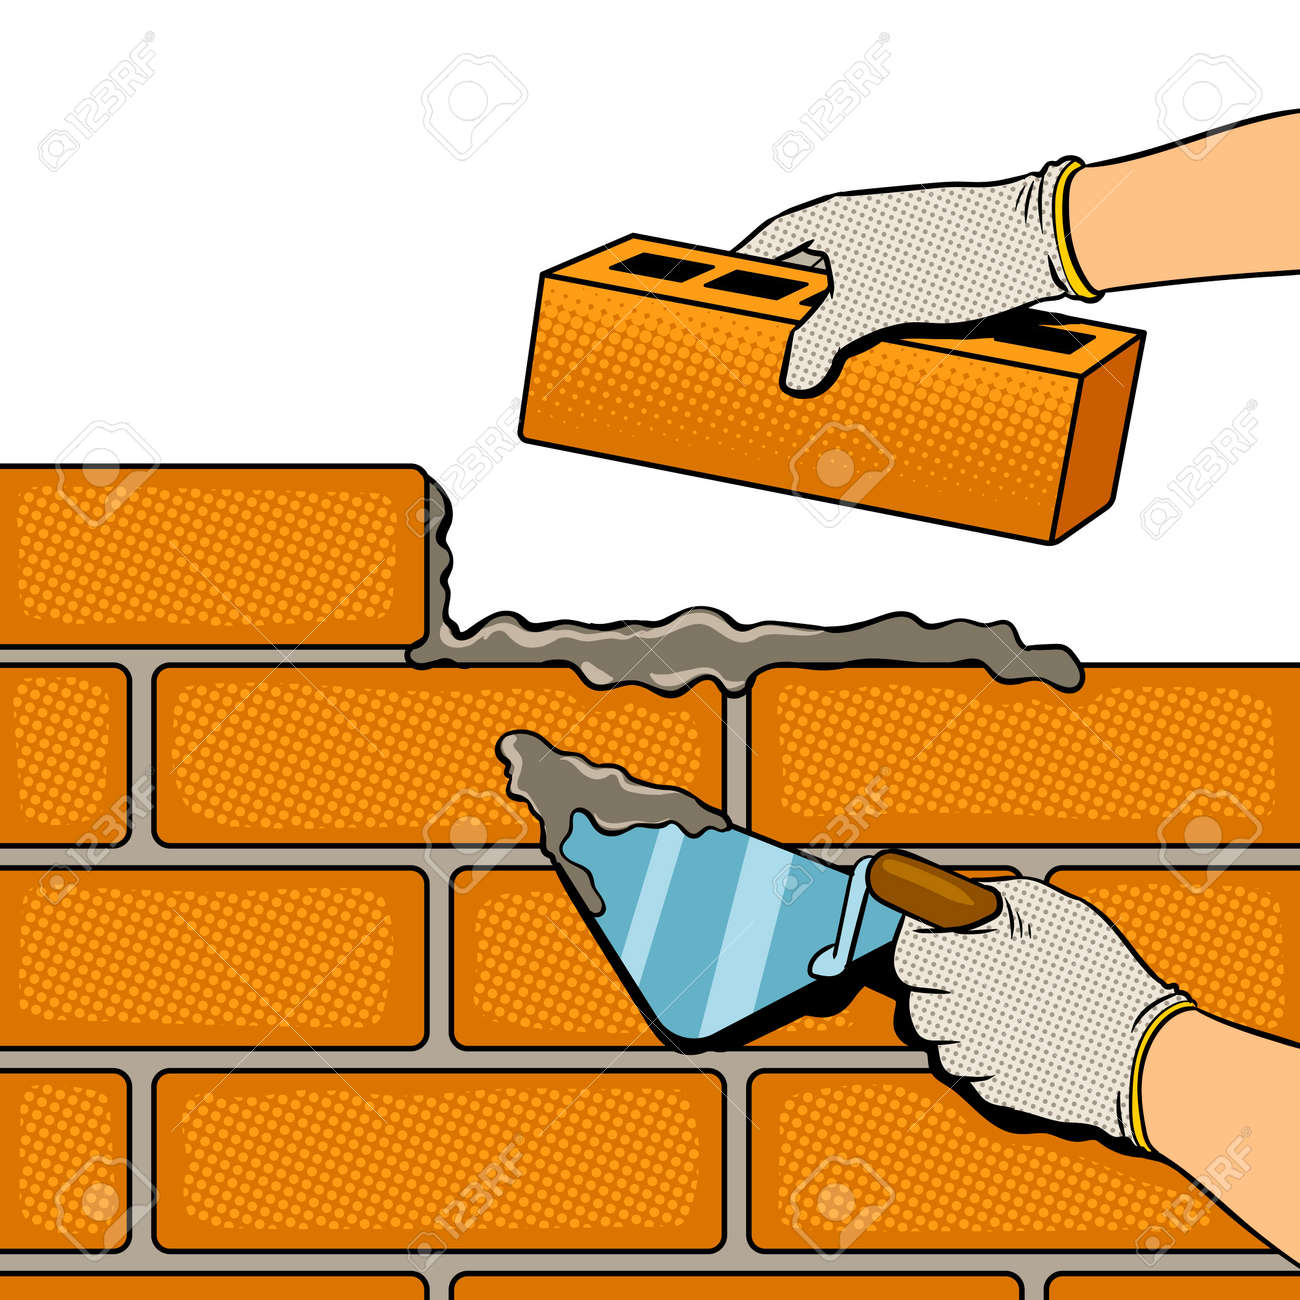 Brick Wall Building Process Pop Art Retro Vector Illustration Isolated Image On White Background